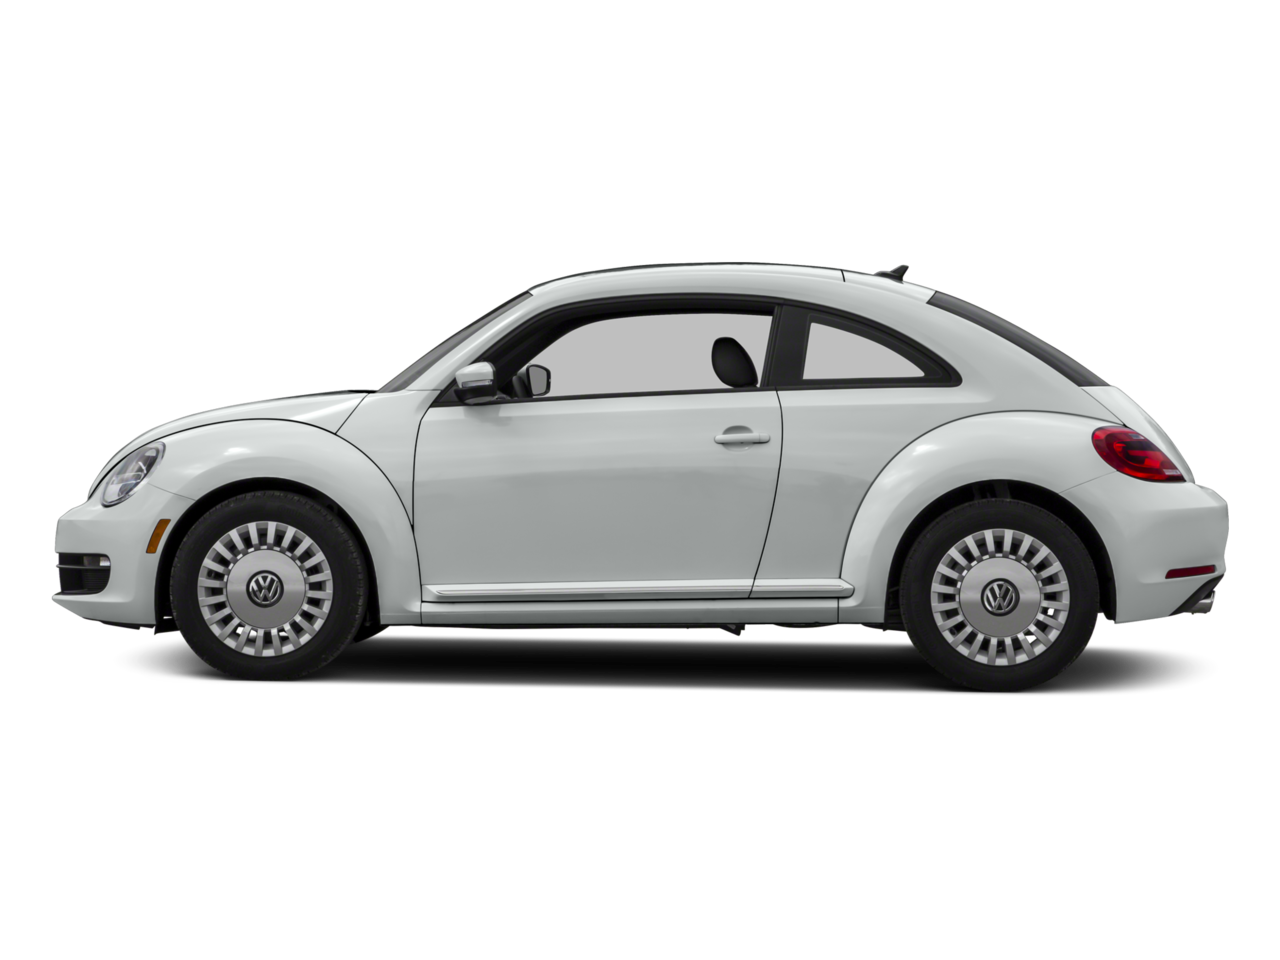 2016 Volkswagen Beetle Coupe 2dr Auto 1.8T Wolfsburg Edition